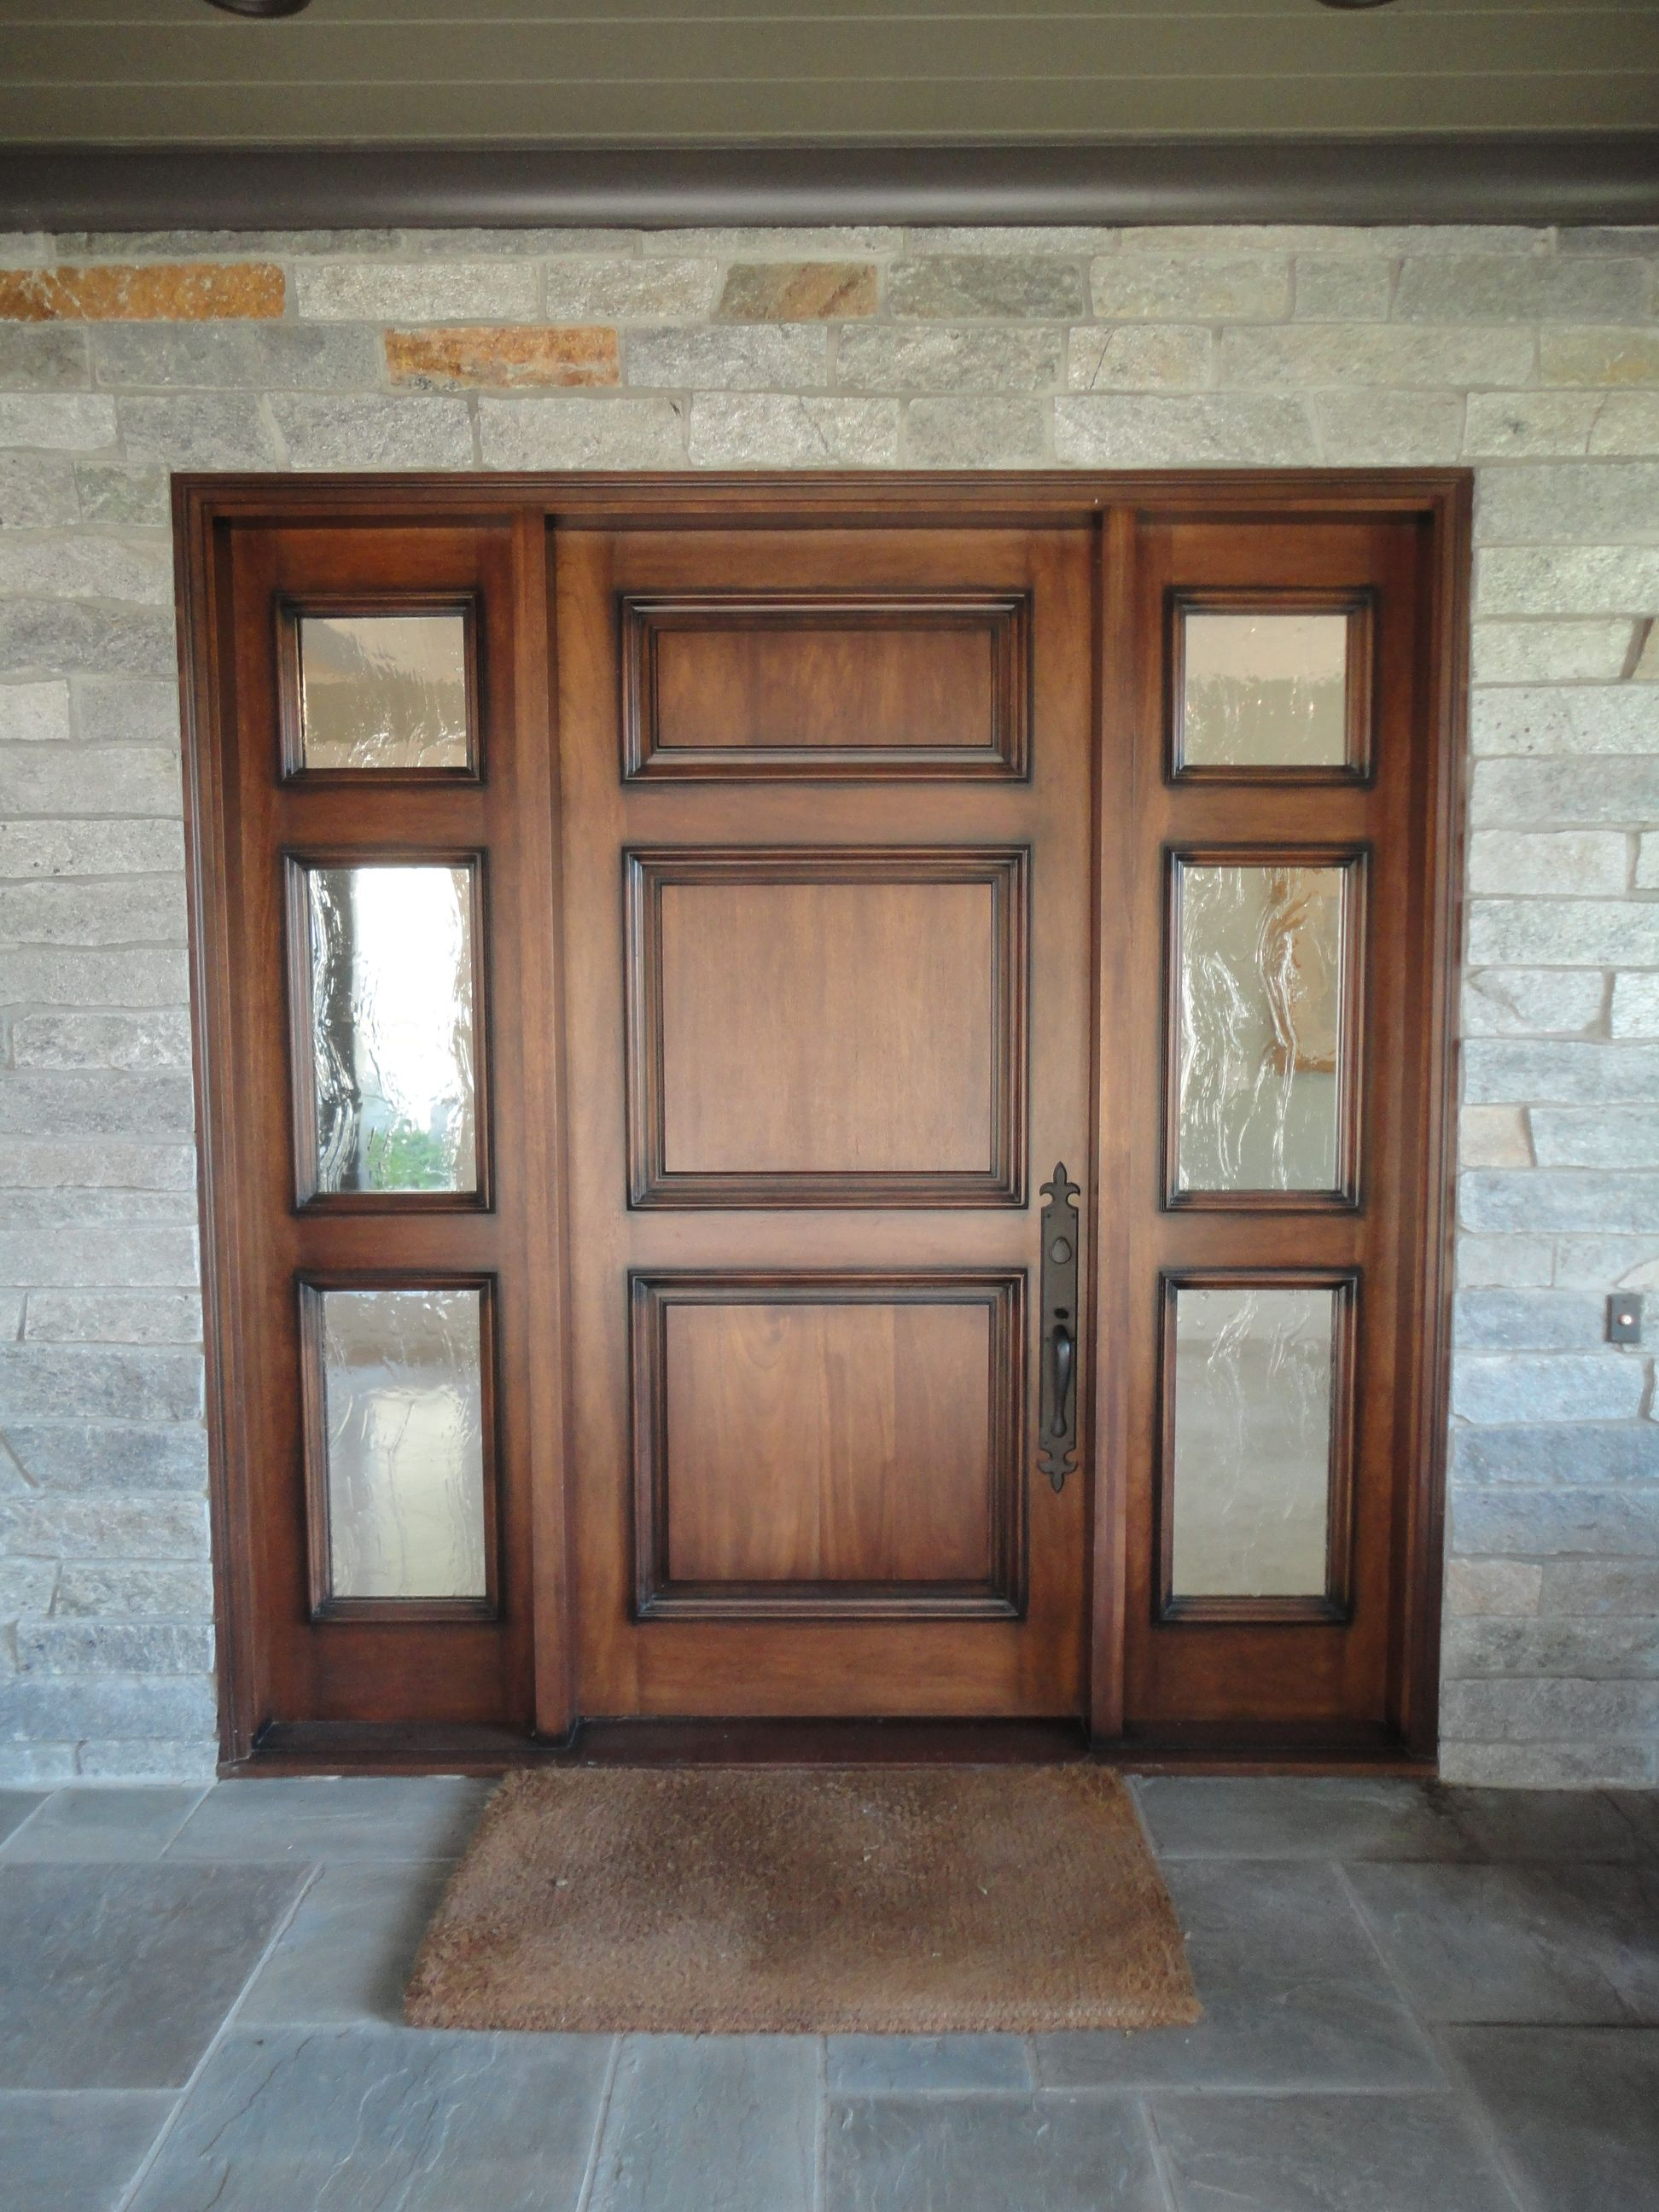 Modern entry doors with sidelights - 3 Panel Entry Door With 2 3 Light Sidelights With Seedy Reemy Glass Antiguadoors